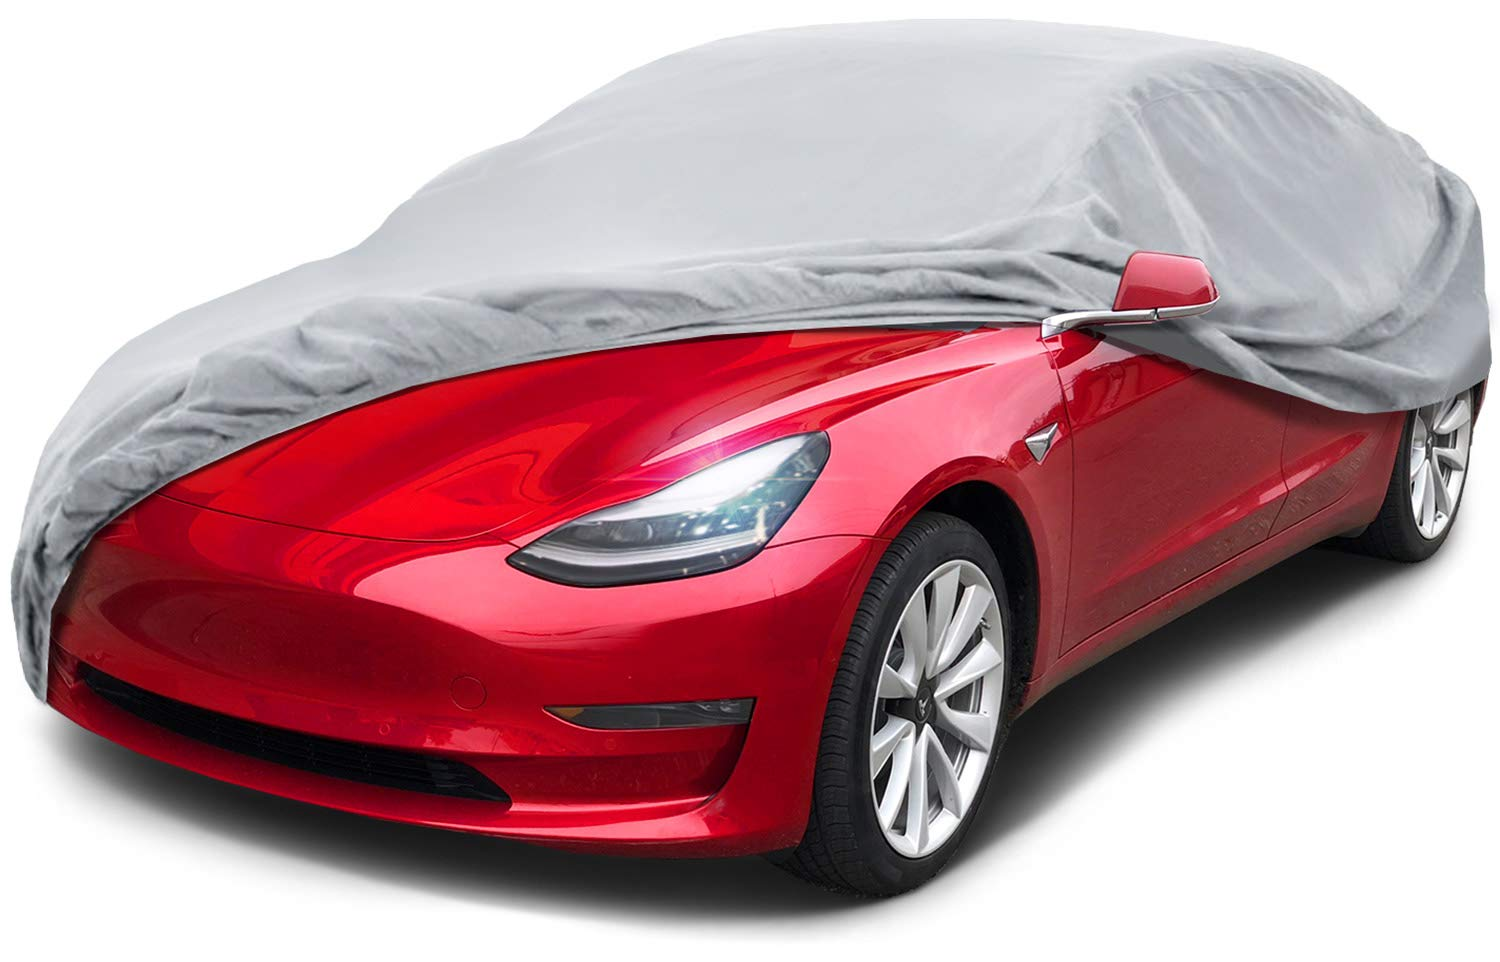 Leader International Basic Guard 3 Layer Breathable Universal Fit Cover (Cars up to 16'8'(200'), Grey 16' 8(200)